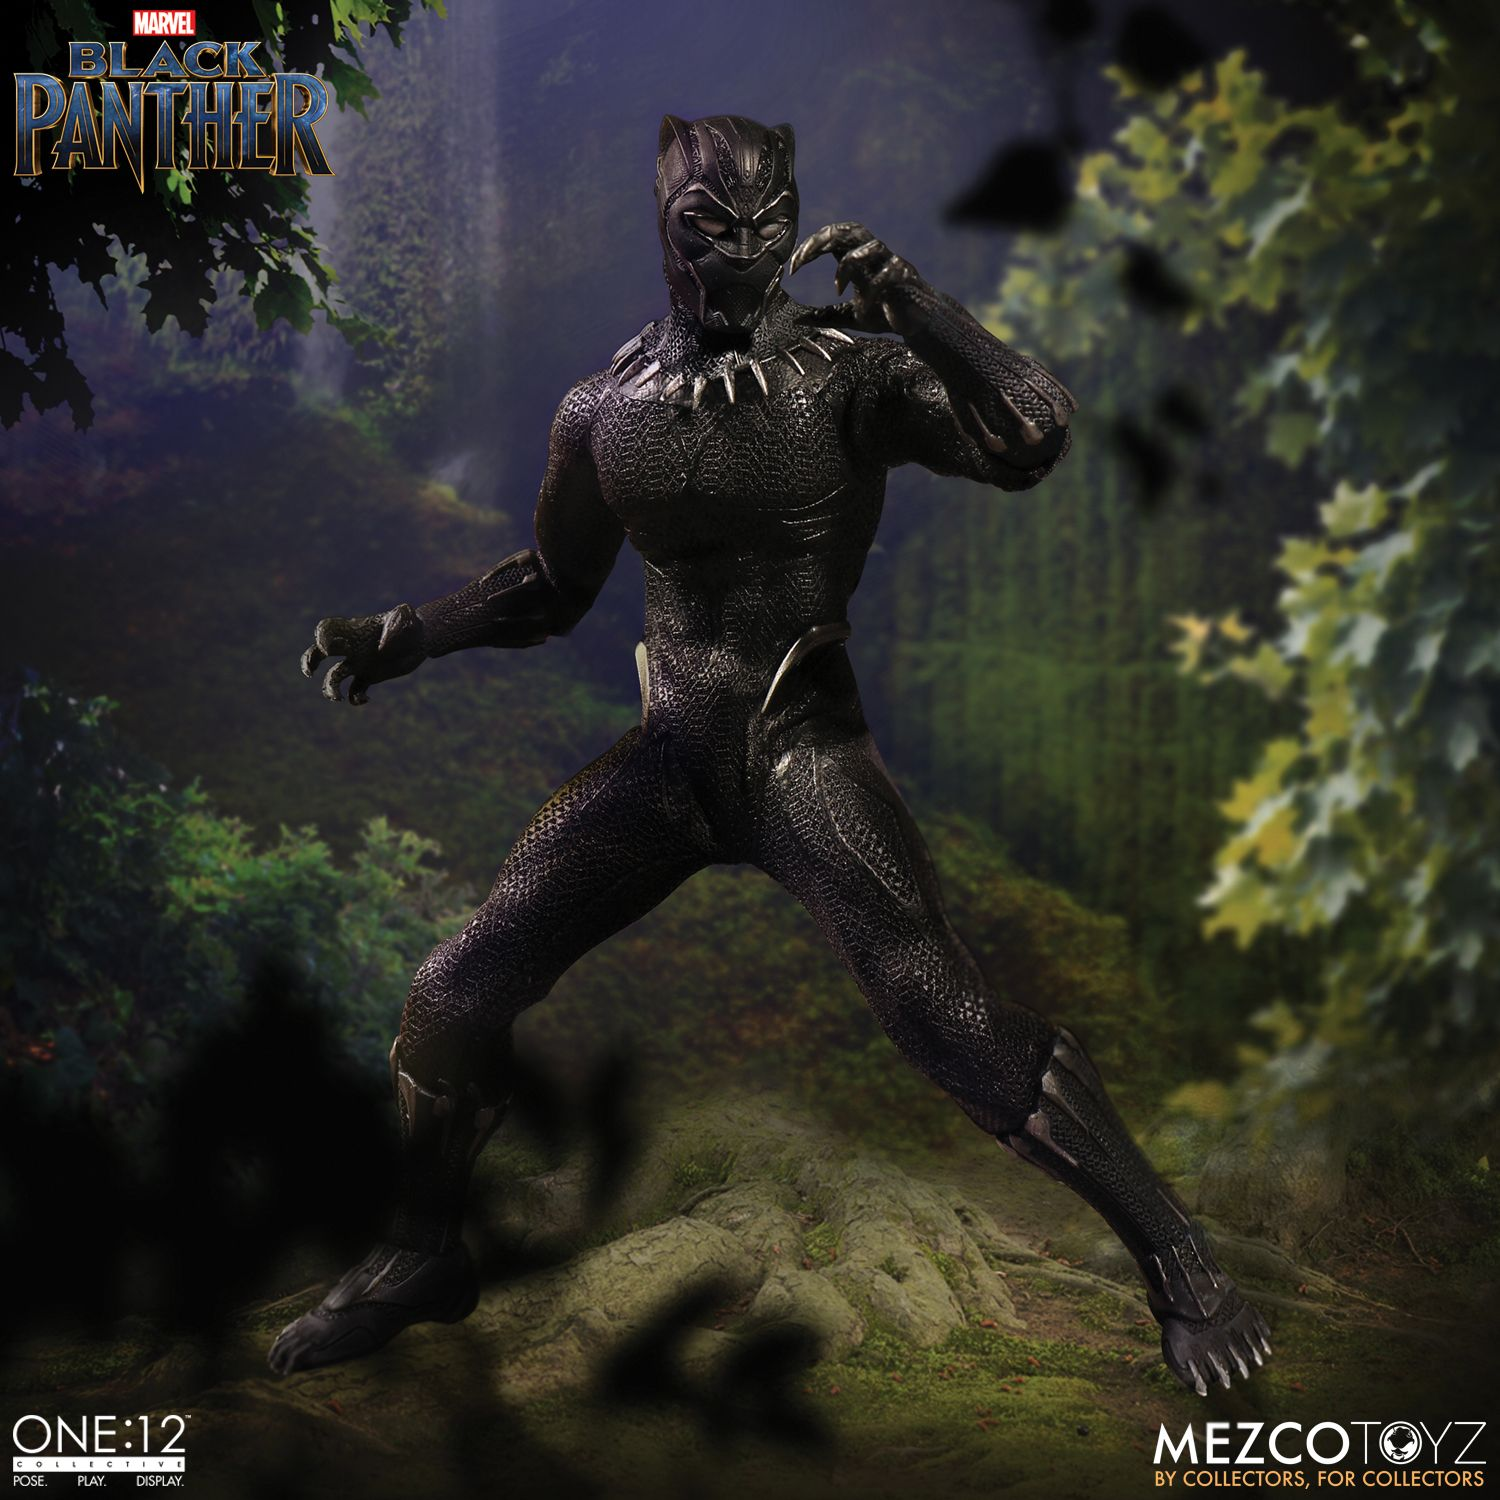 BLACK PANTHER Figure Mezco IN STOCK ONE:12 Collective